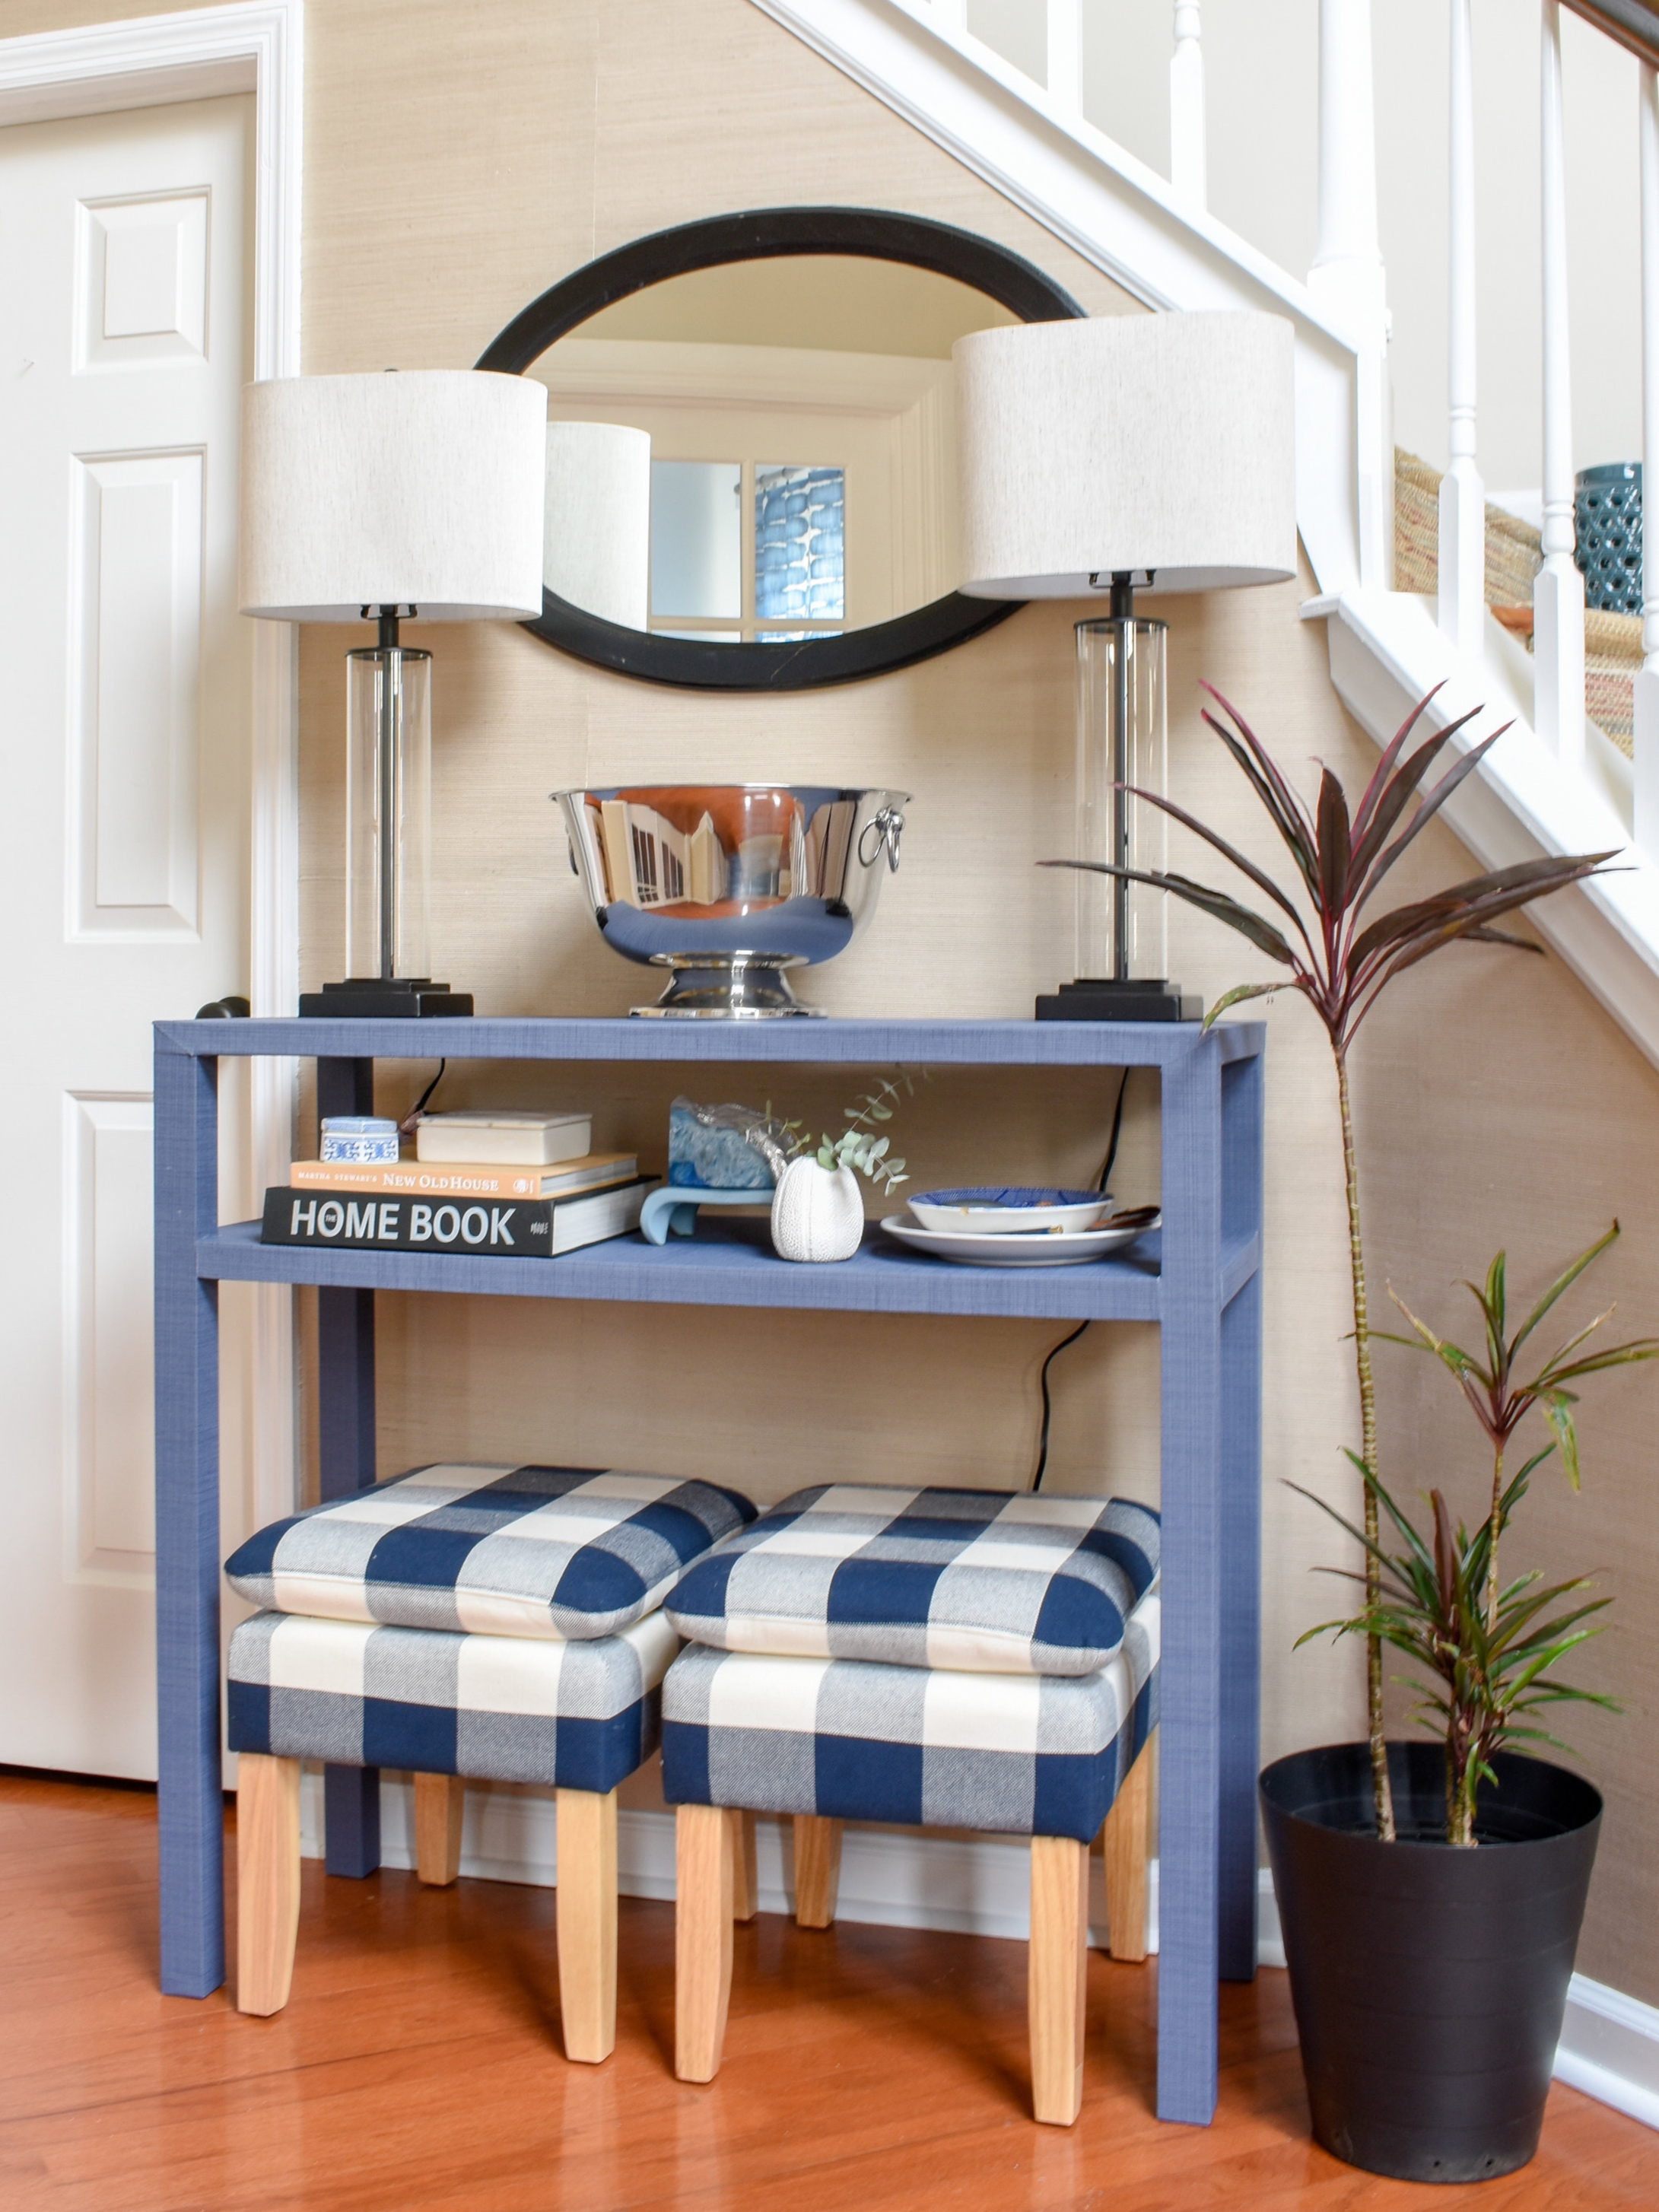 Serena and Lily inspired blue console table with textural wallpaper - an easy DIY project that costs a fraction of the original #diyhomedecor #knockoffdecor #serenaandlily